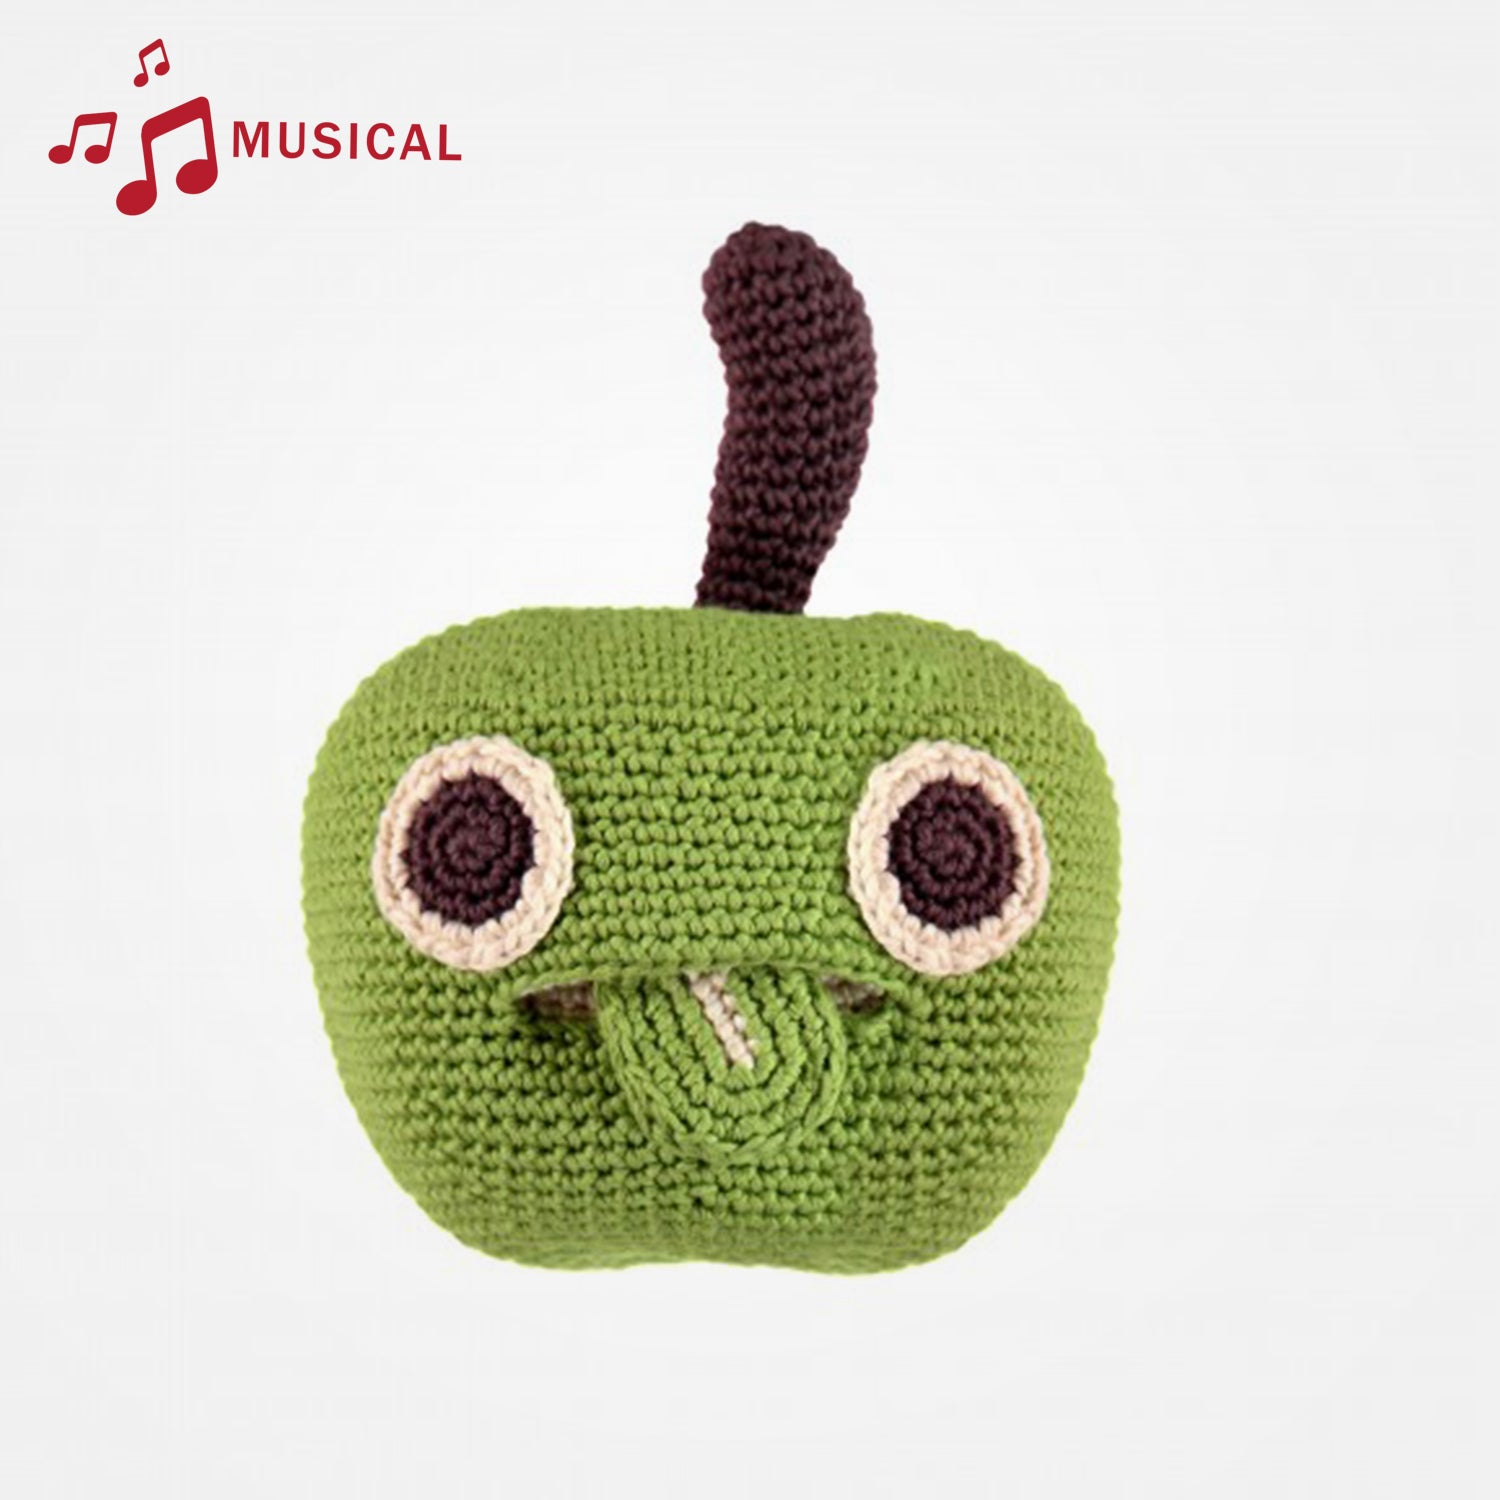 Alice The Apple Musical Organic Soft Toy by MyuM